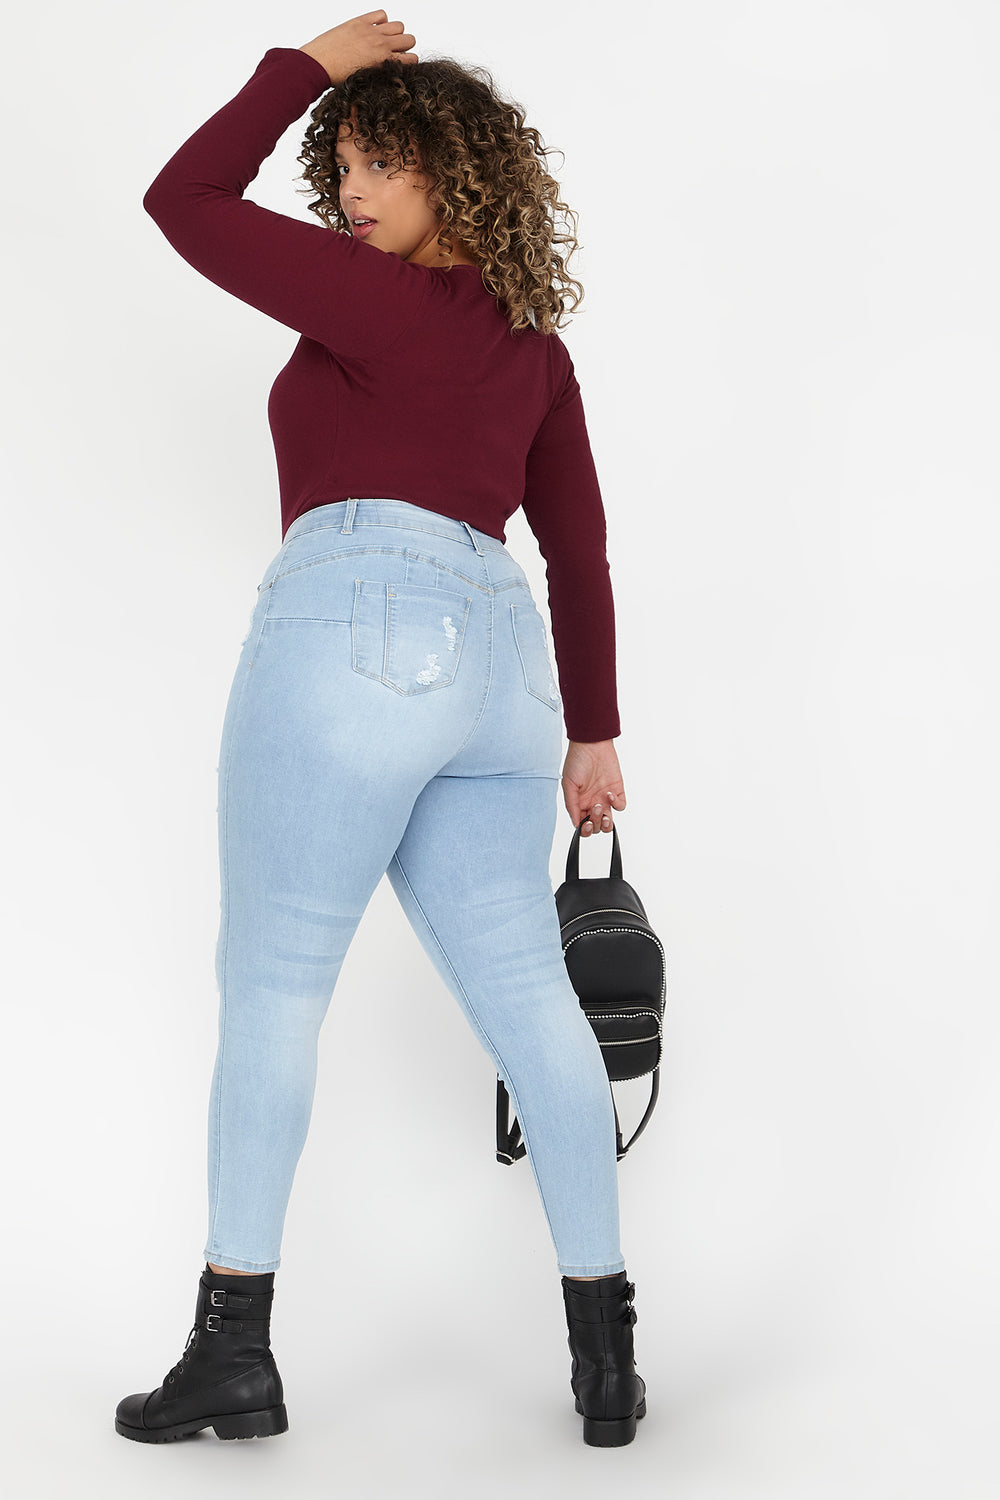 Plus Size Butt, I Love You High-Rise Push-Up Distressed Skinny Jean Light Denim Blue